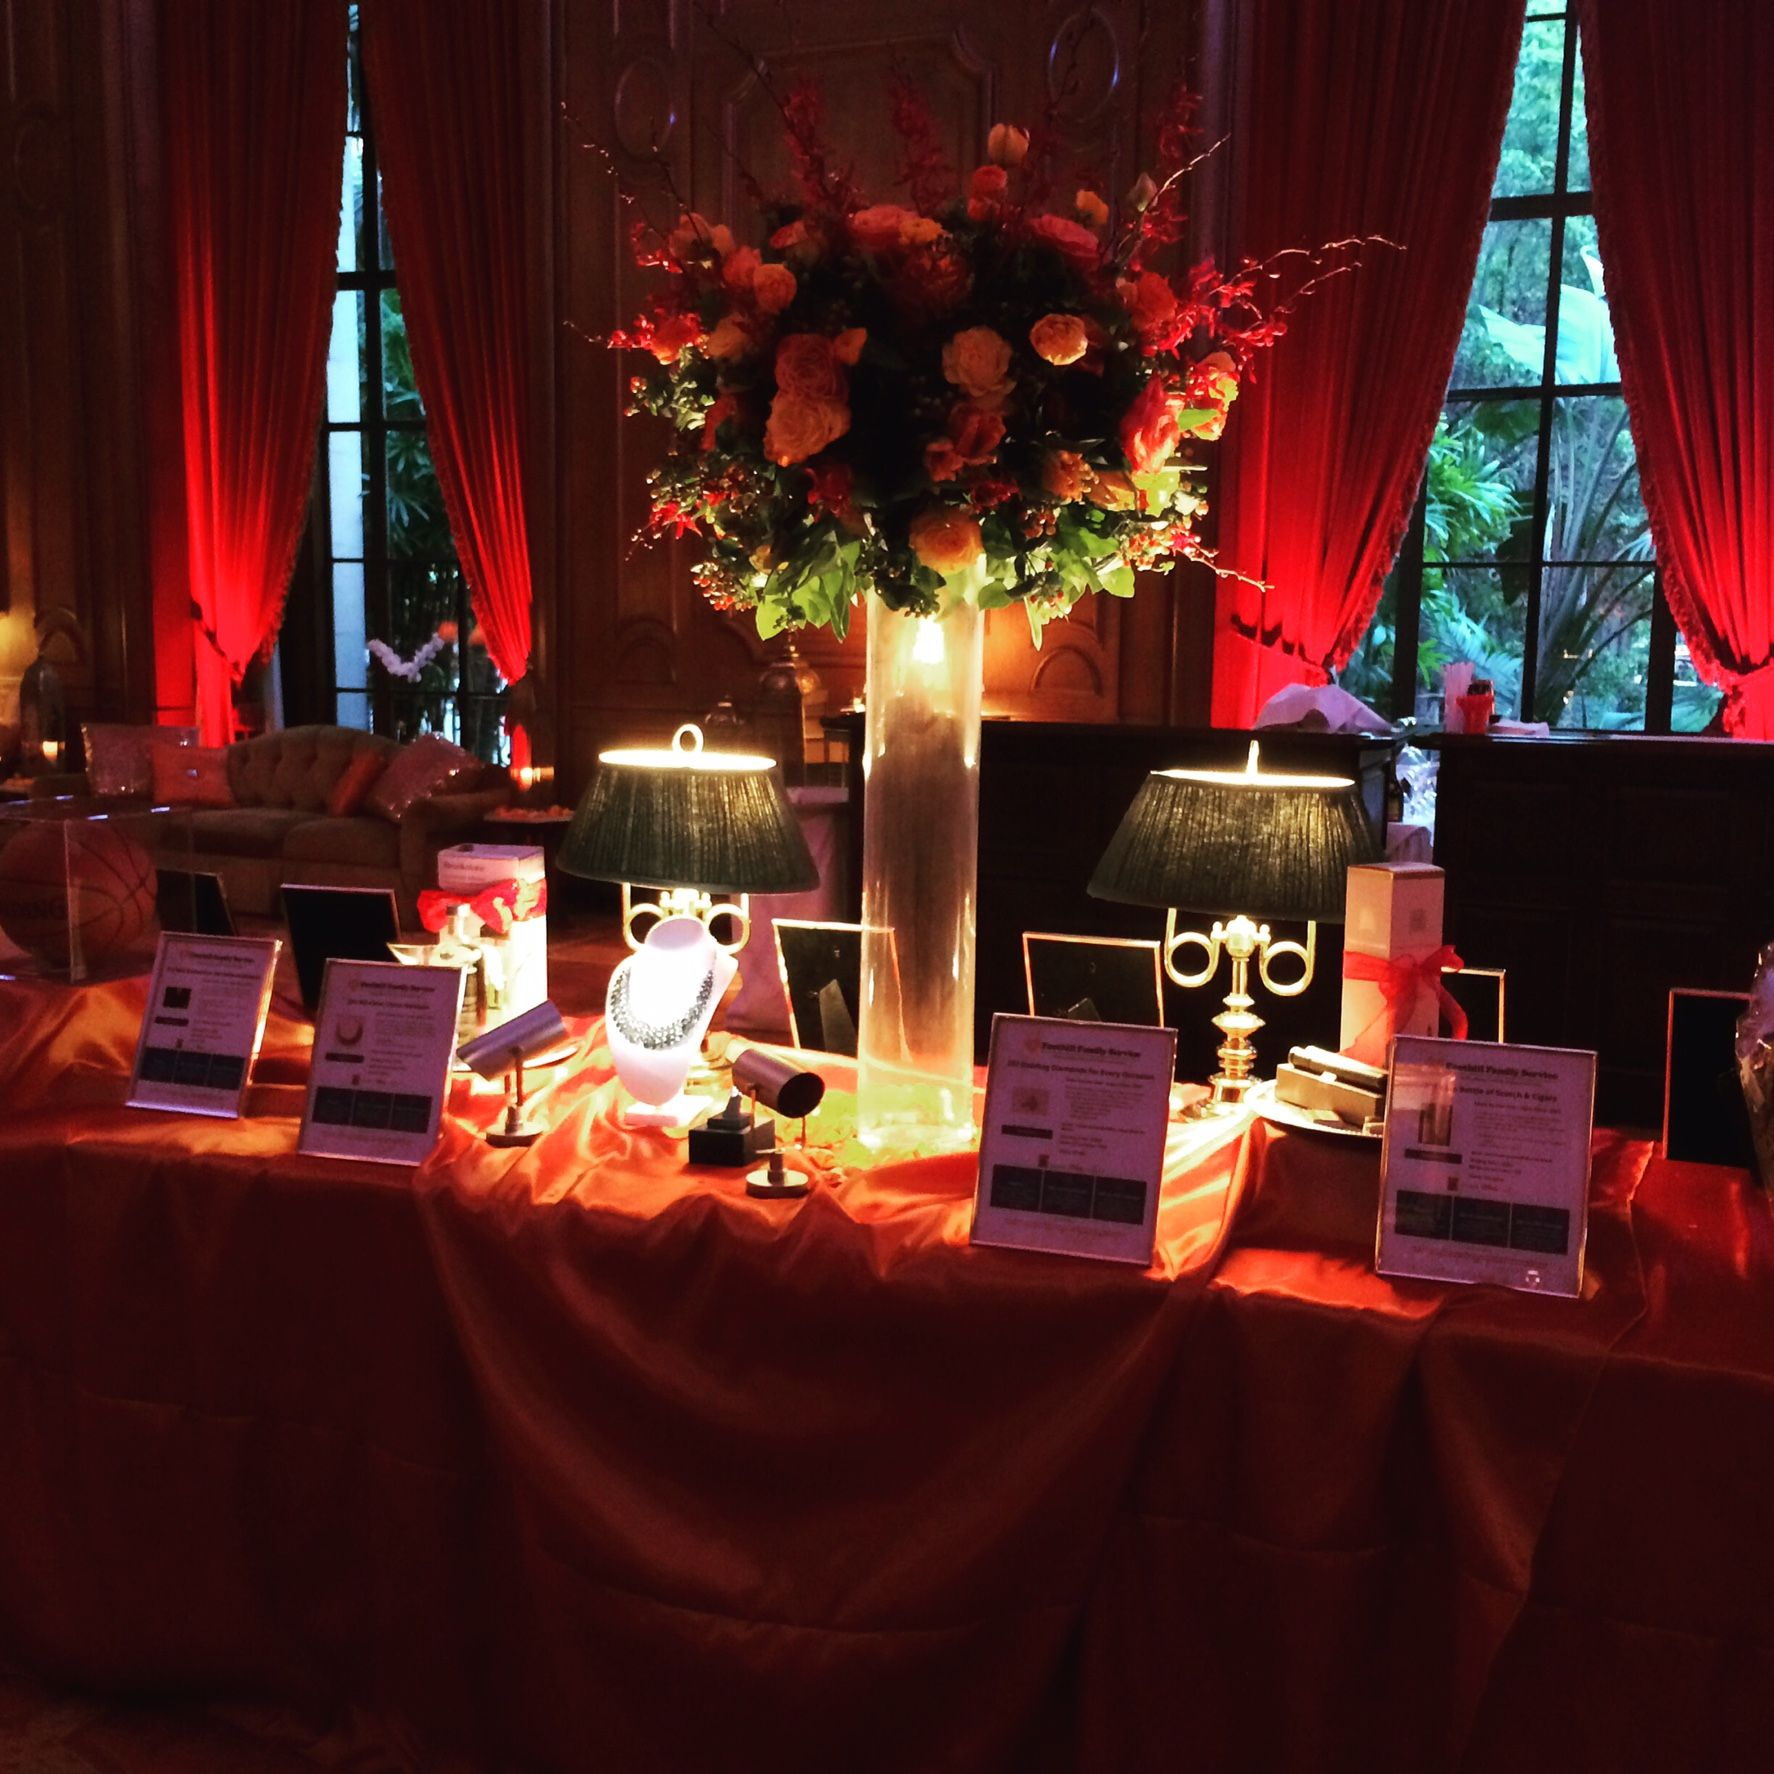 red dramatic classy silent auction table with roses and uplights silent auction